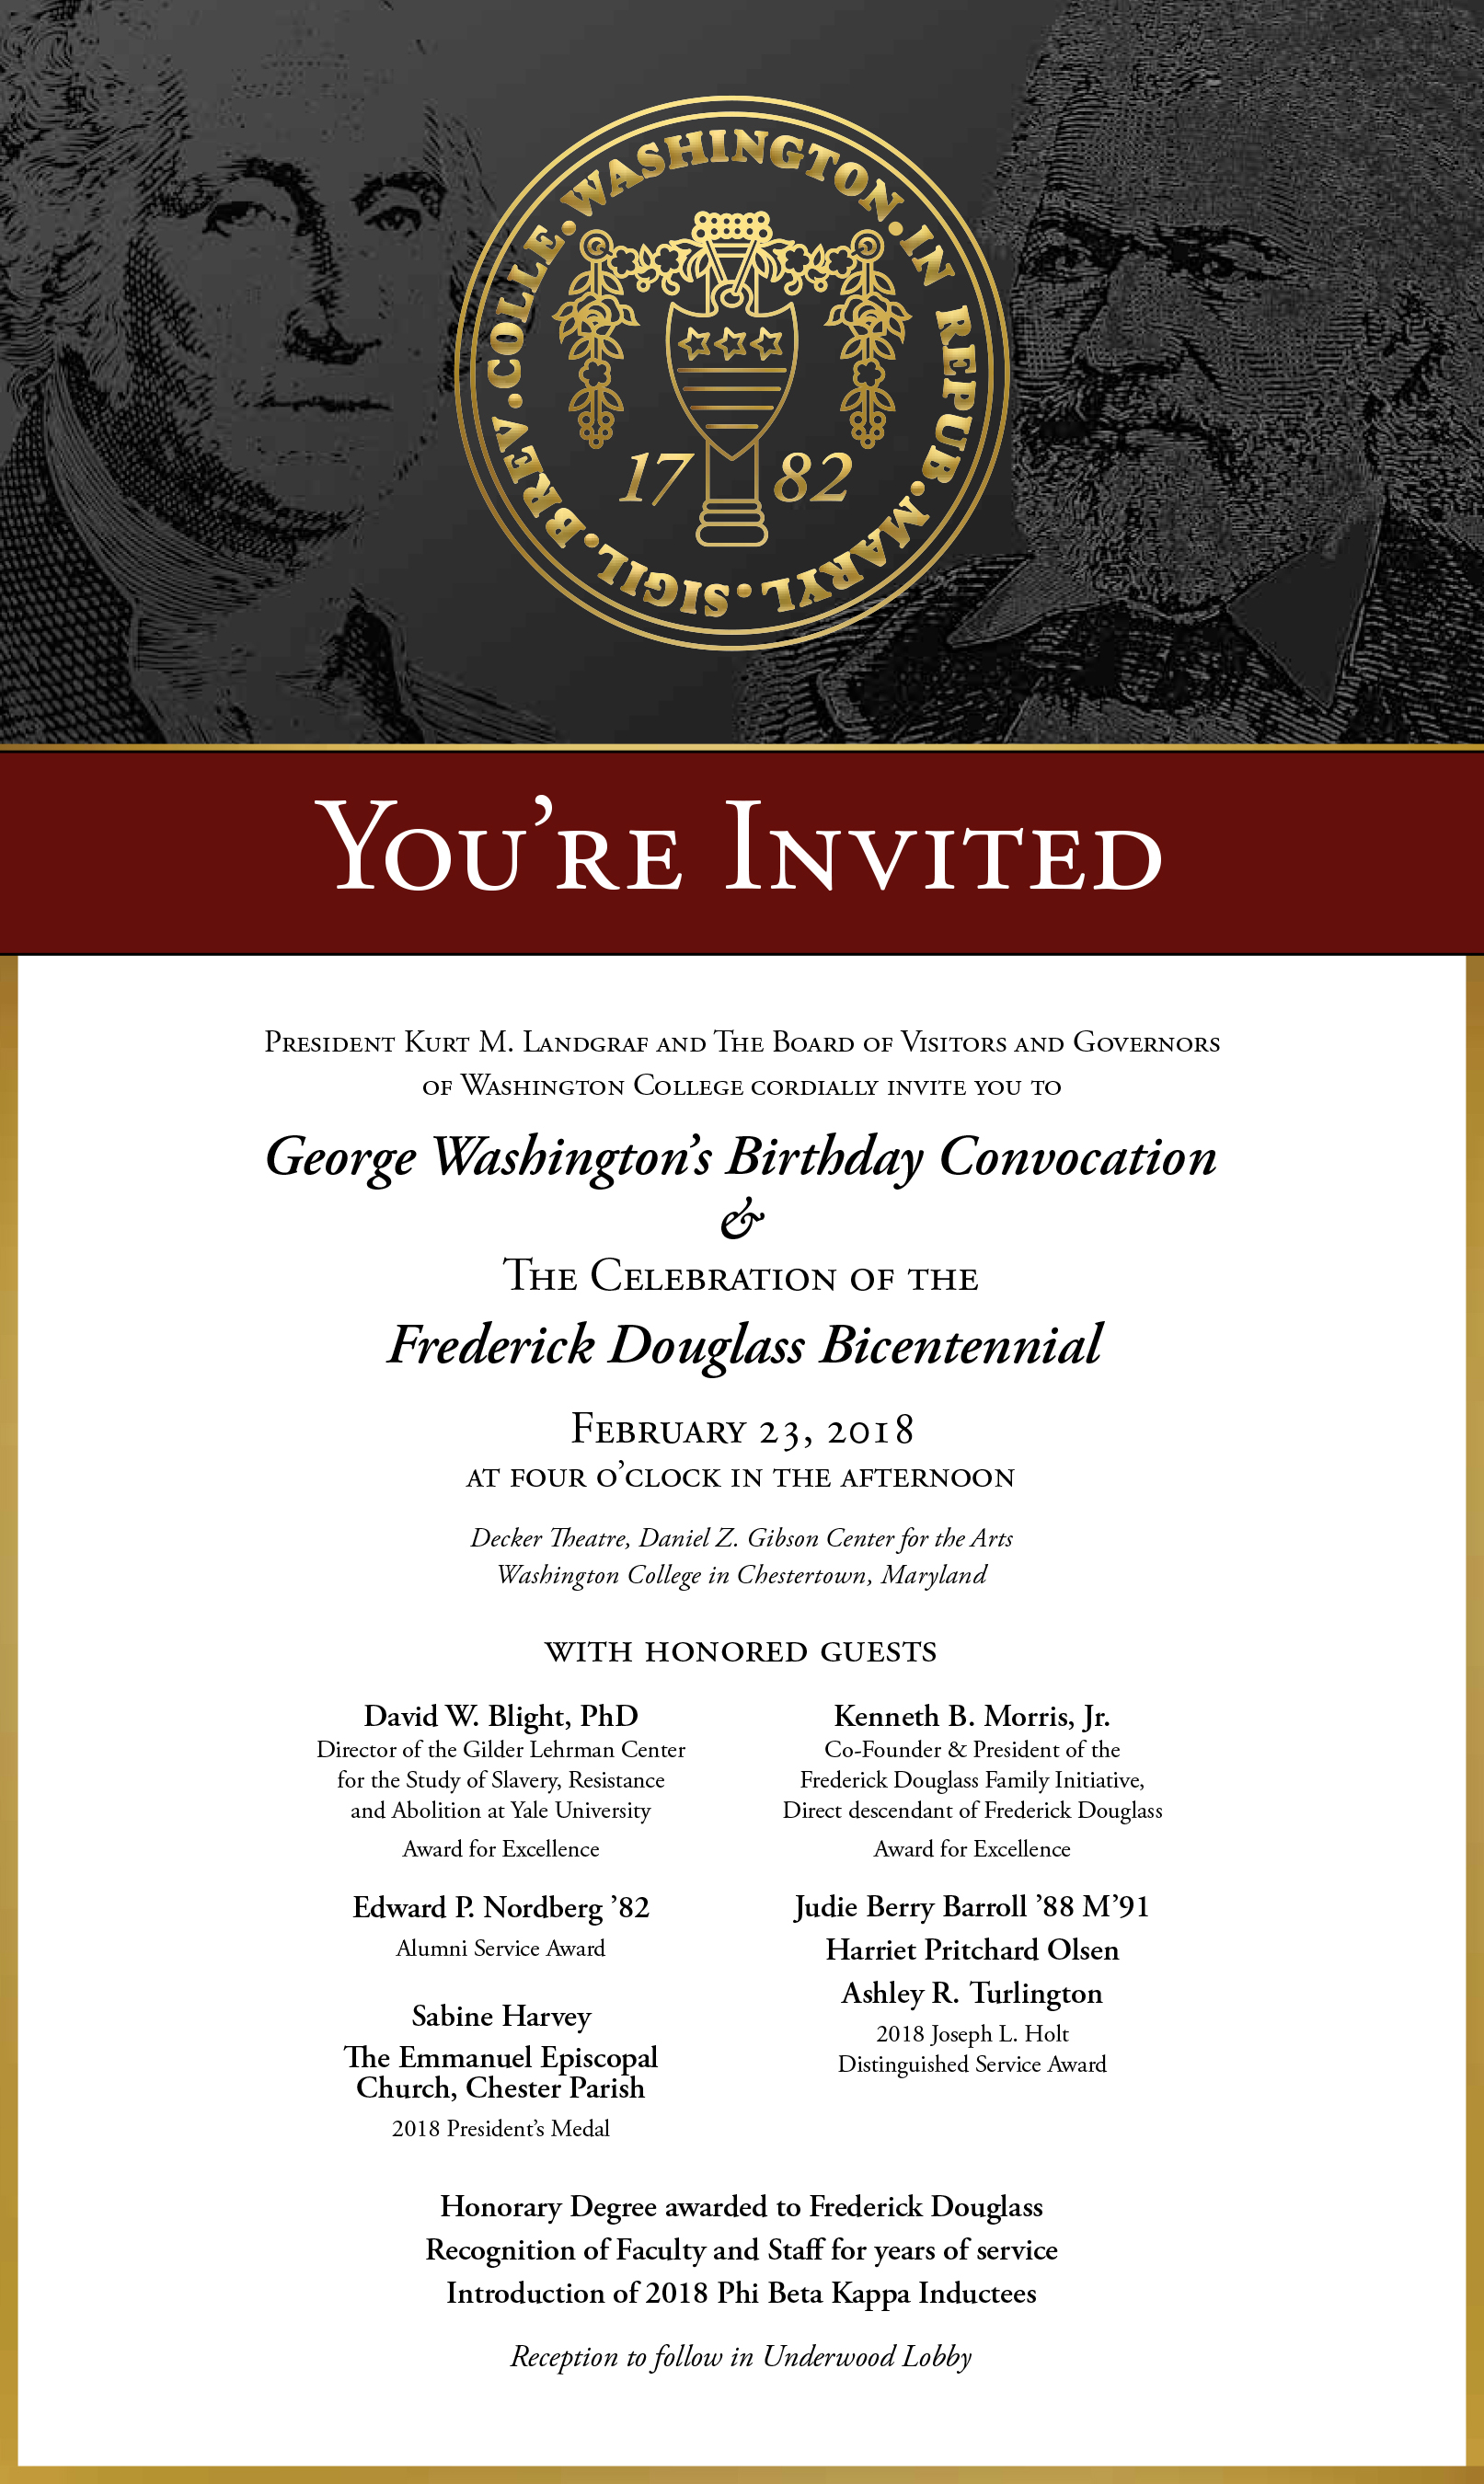 George Washington's Birthday Convocation and The Celebration of the Frederick Douglass Bicentennial